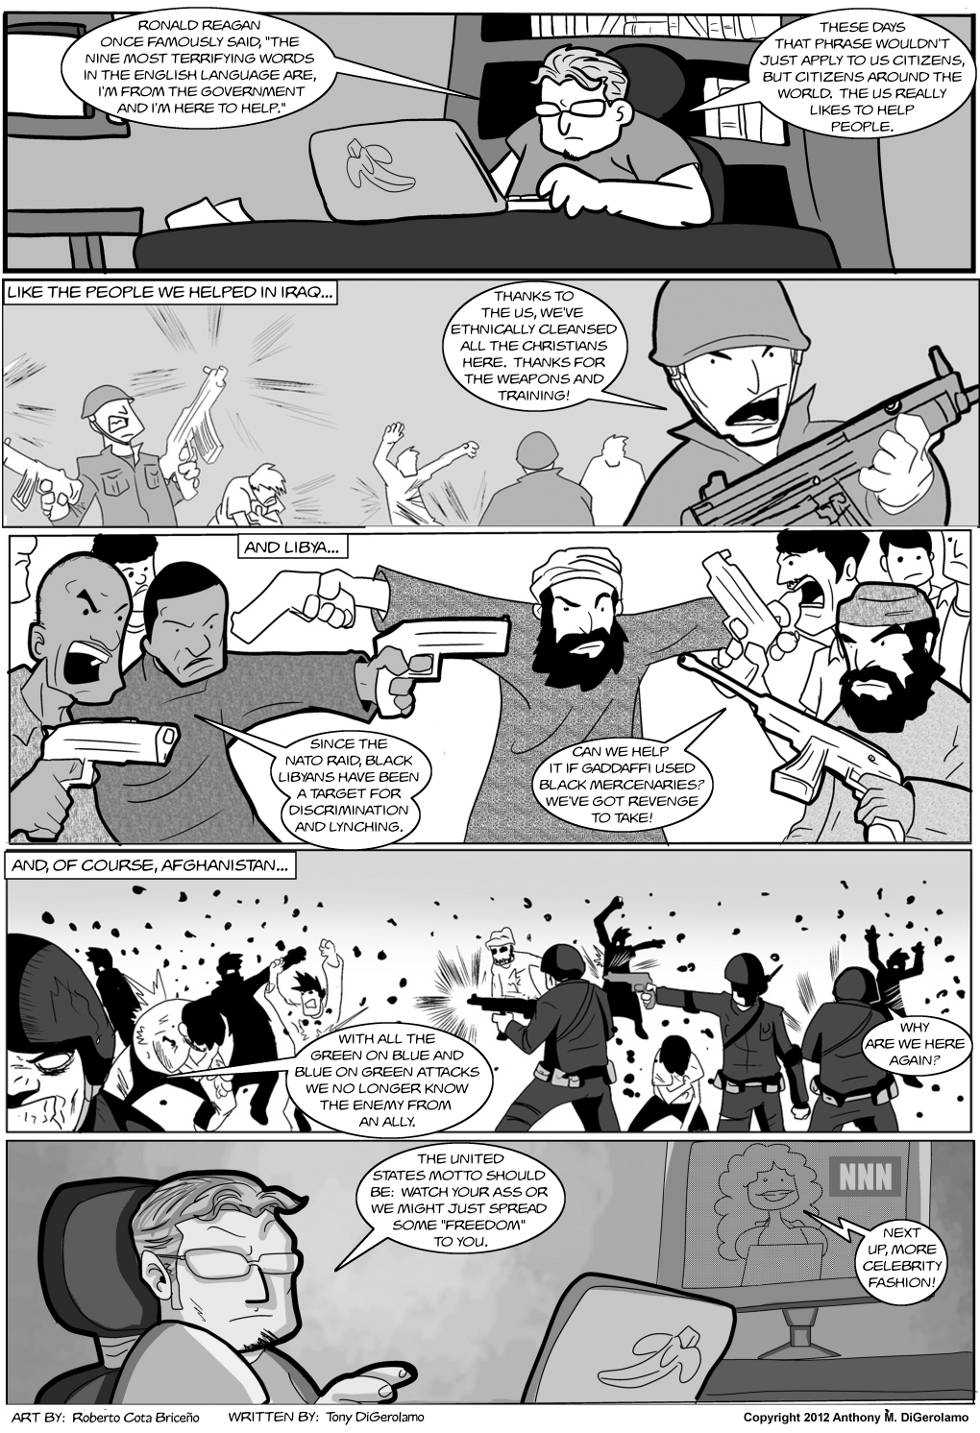 The Antiwar Comic:  The Consequences of Help